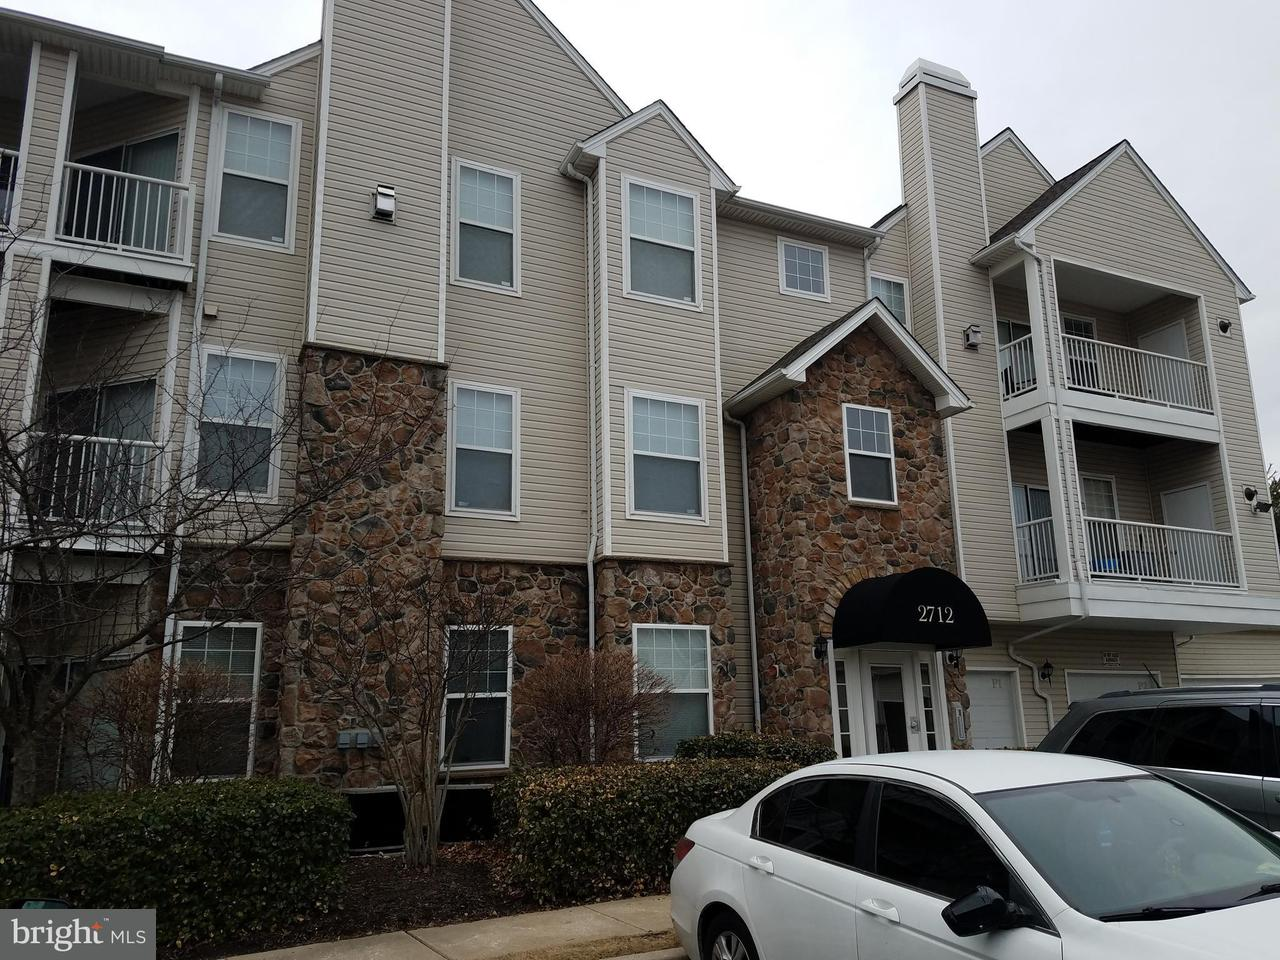 Condominium for Rent at 2712 Gresham Way #302 Windsor Mill, Maryland 21244 United States